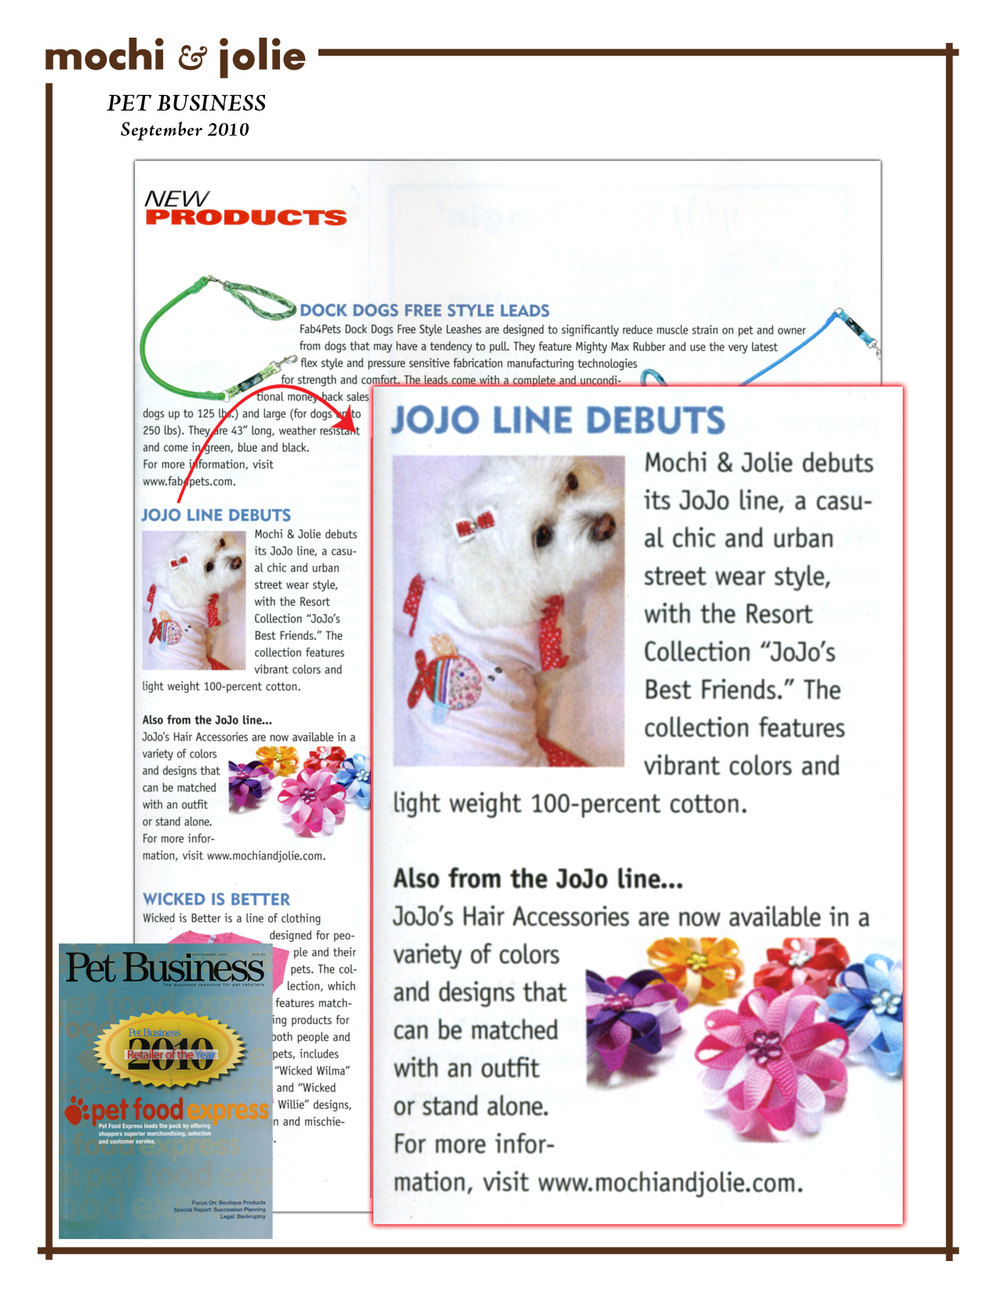 Pet Business (September 2010)